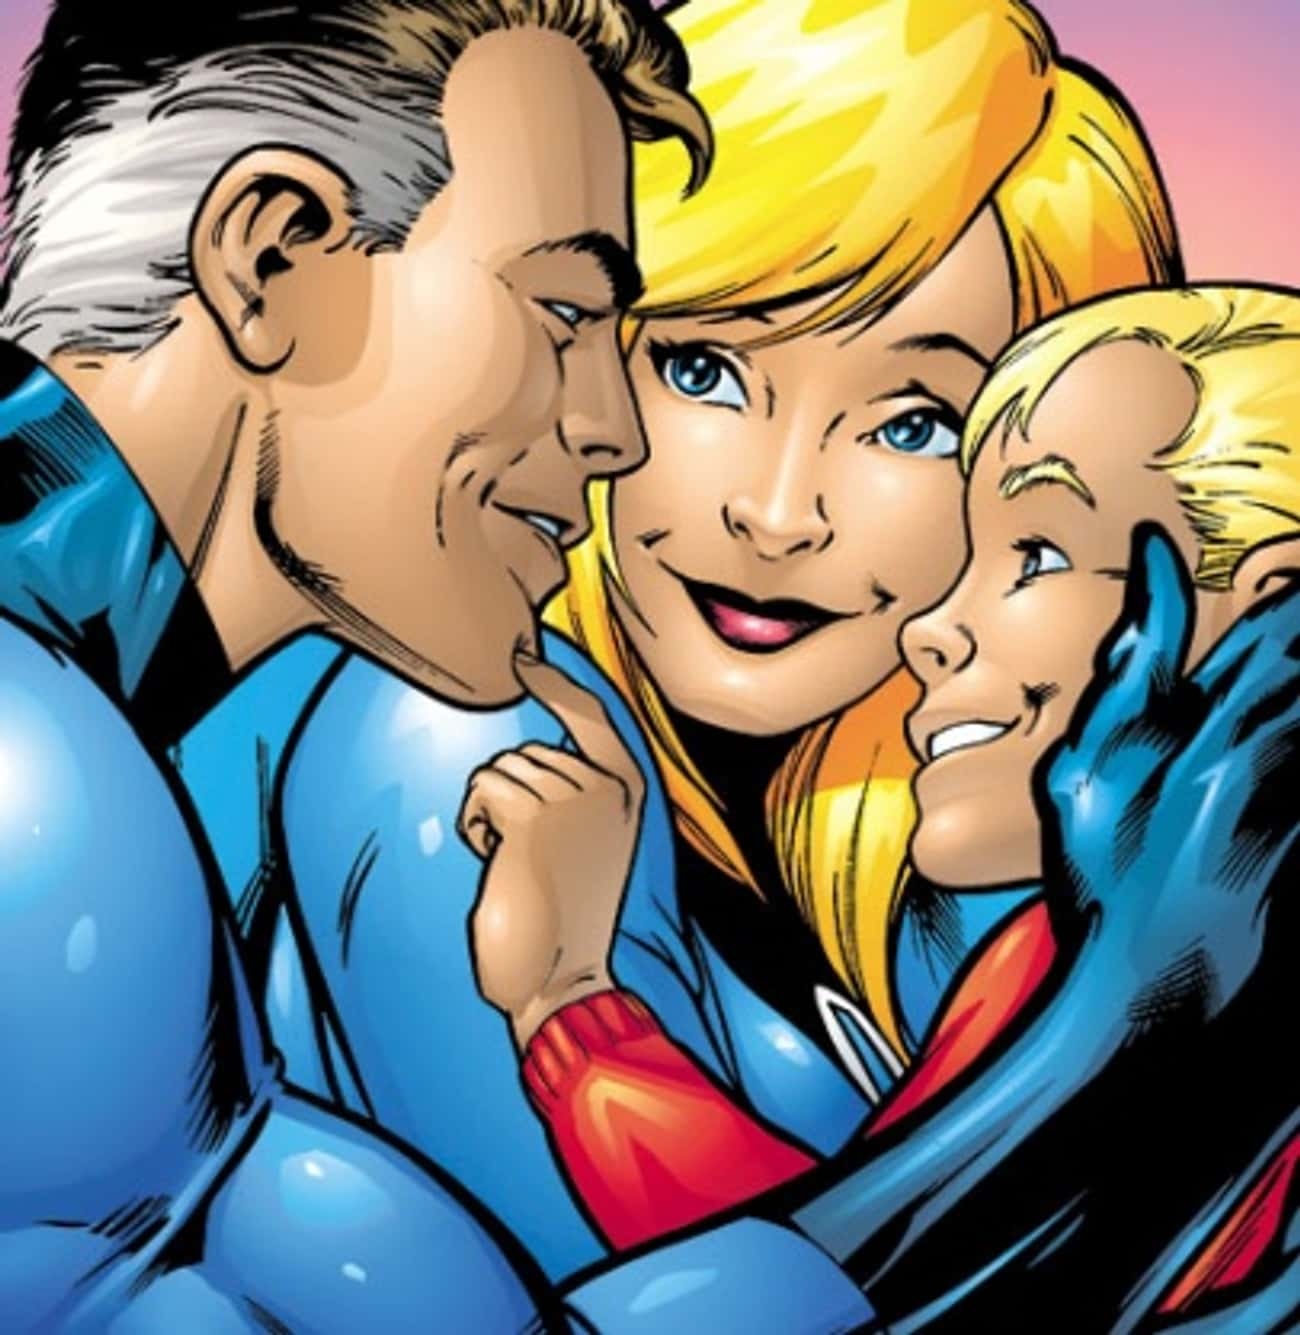 Reed Richards and Sue Storm